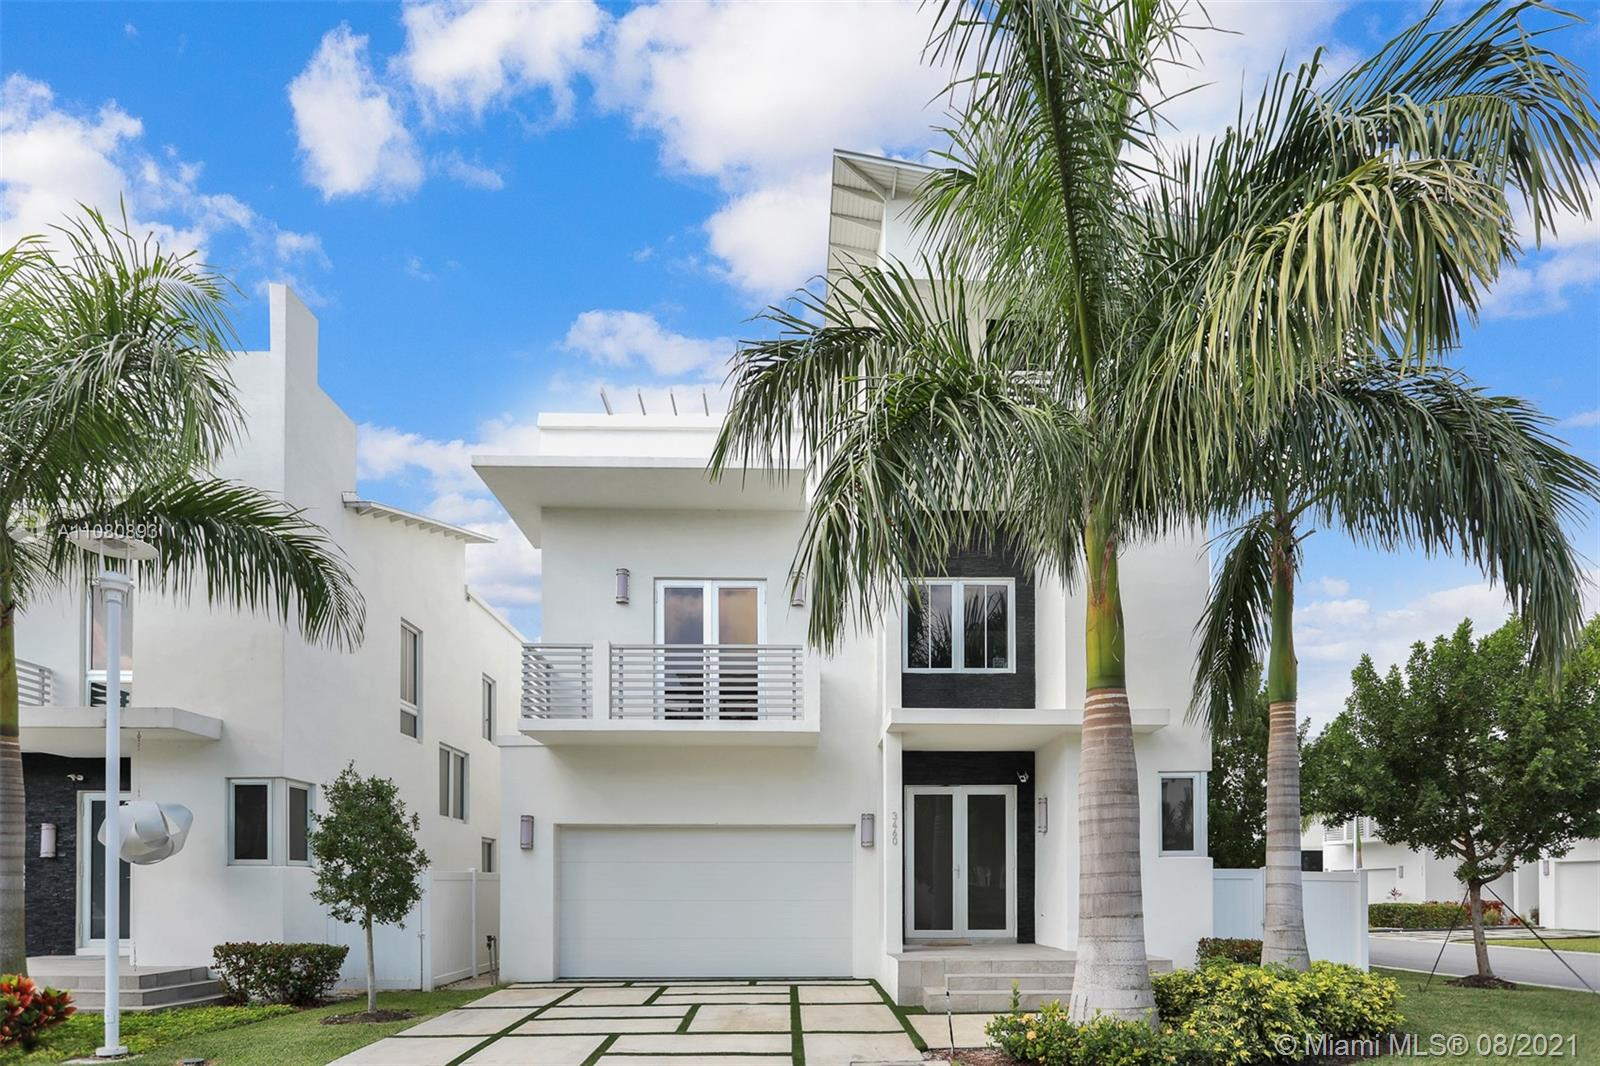 Single Family Home,For Sale,3460 NW 83rd Ct, Doral, Florida 33122,Brickell,realty,broker,condos near me